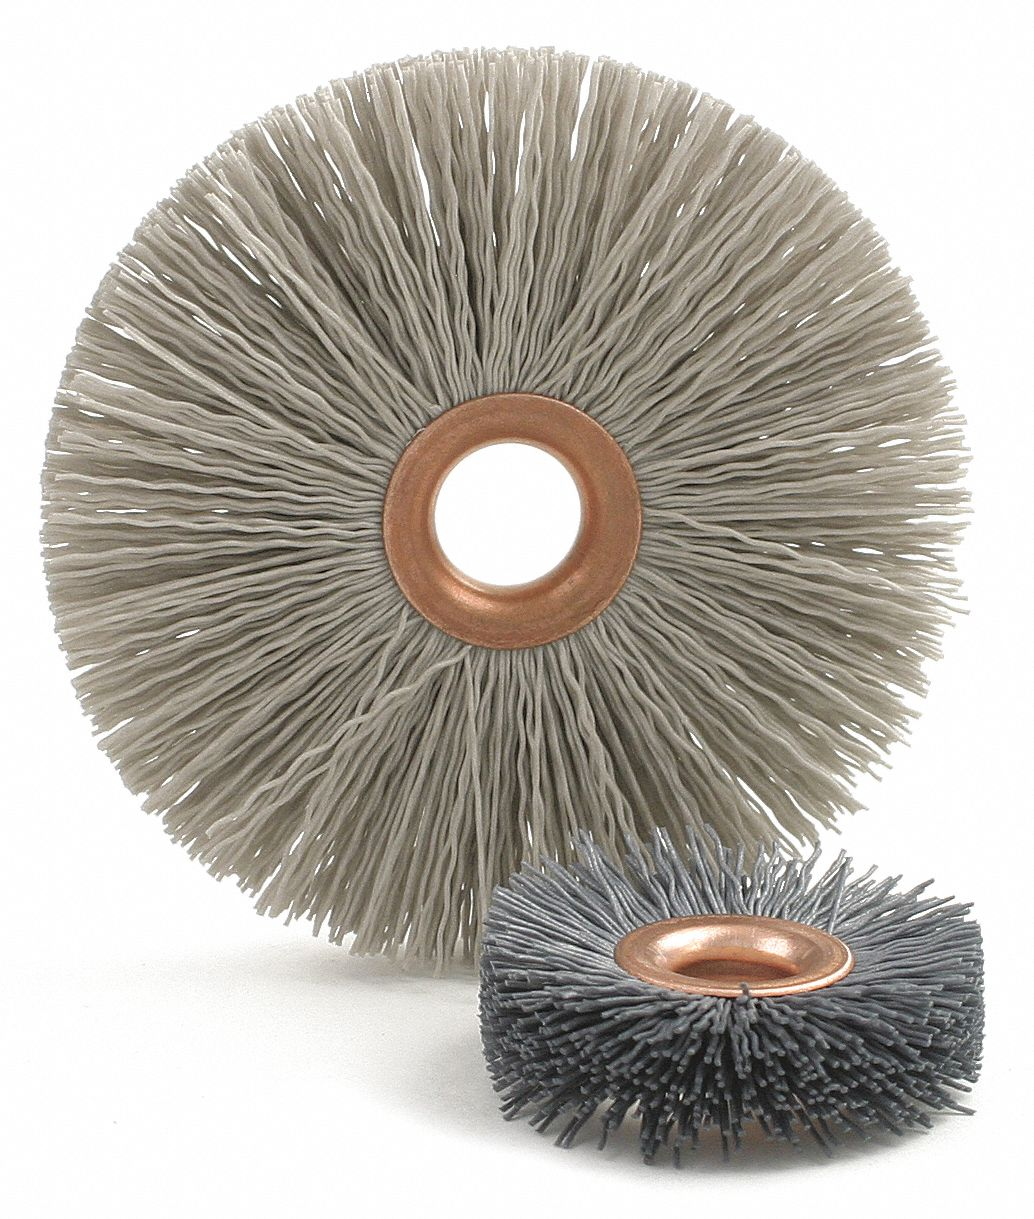 1 in Crimped Wire Wheel Brush, Arbor Hole Mounting, 0.018 in Wire Dia., 1 EA